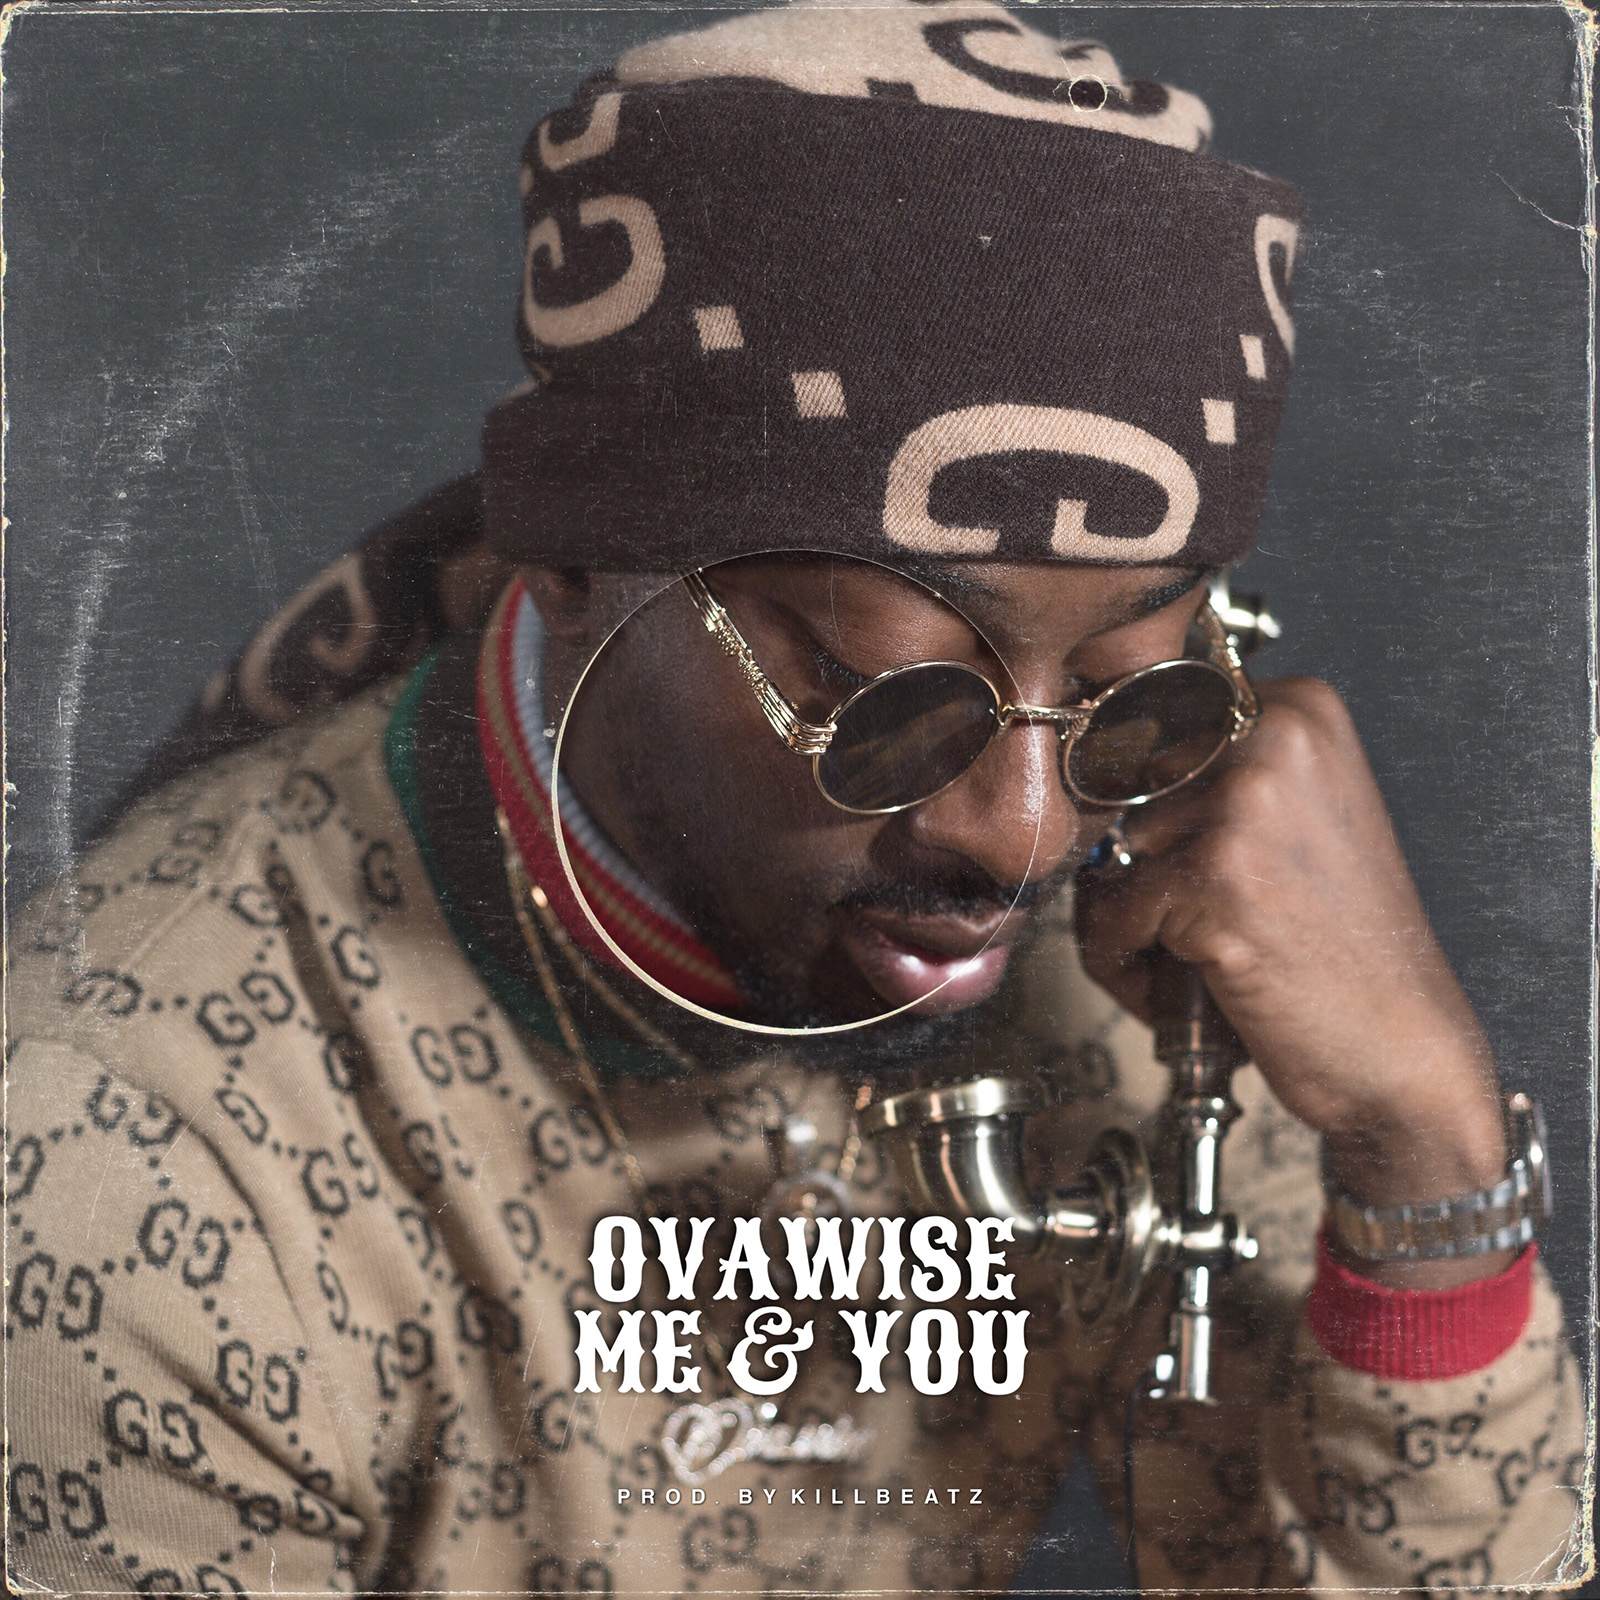 Me And You by Ova Wise